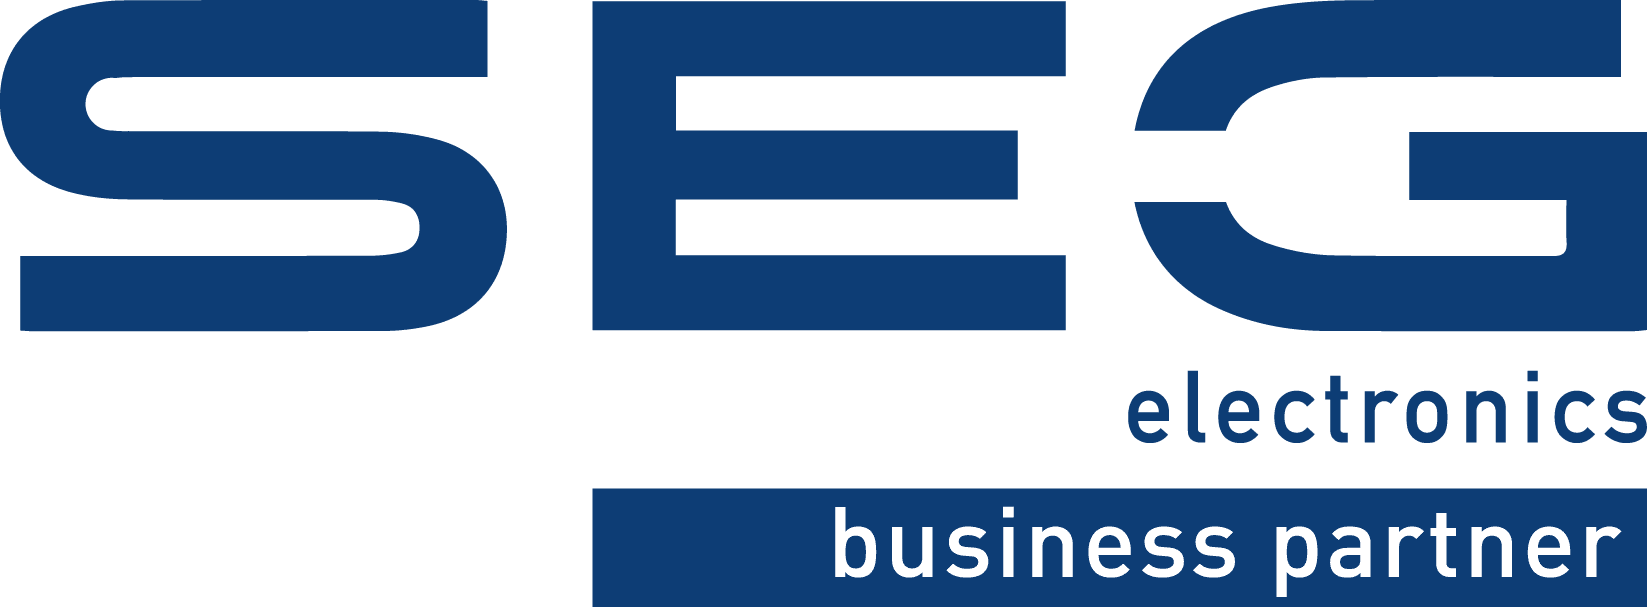 SEG Electronics Business Partner